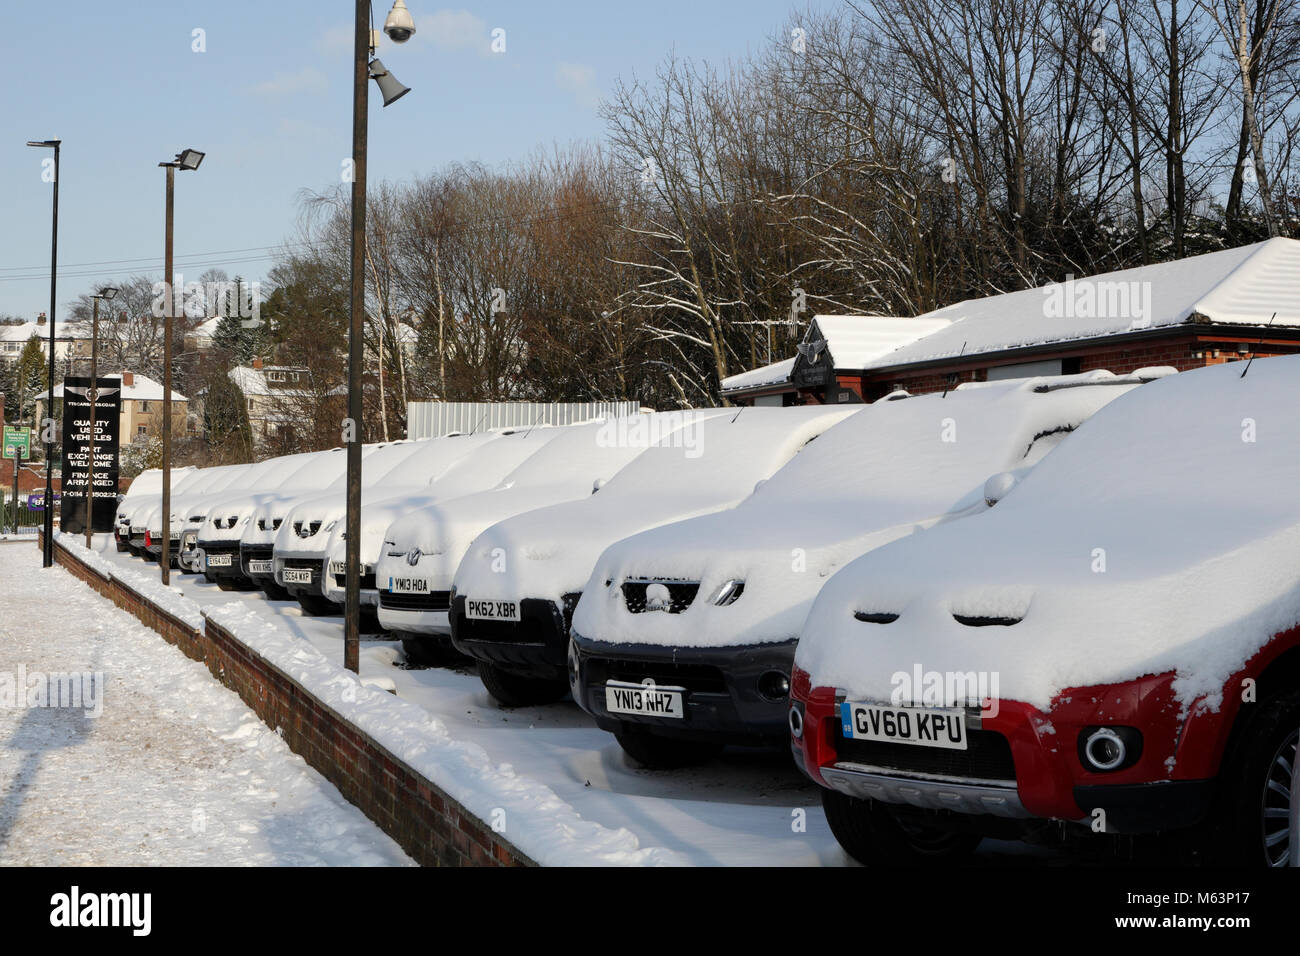 Sheffield, UK, 28th February 2018. Archer Road, Woodseats, secondhand car sales  covered in snow . Credit: Cofiant - Stock Image